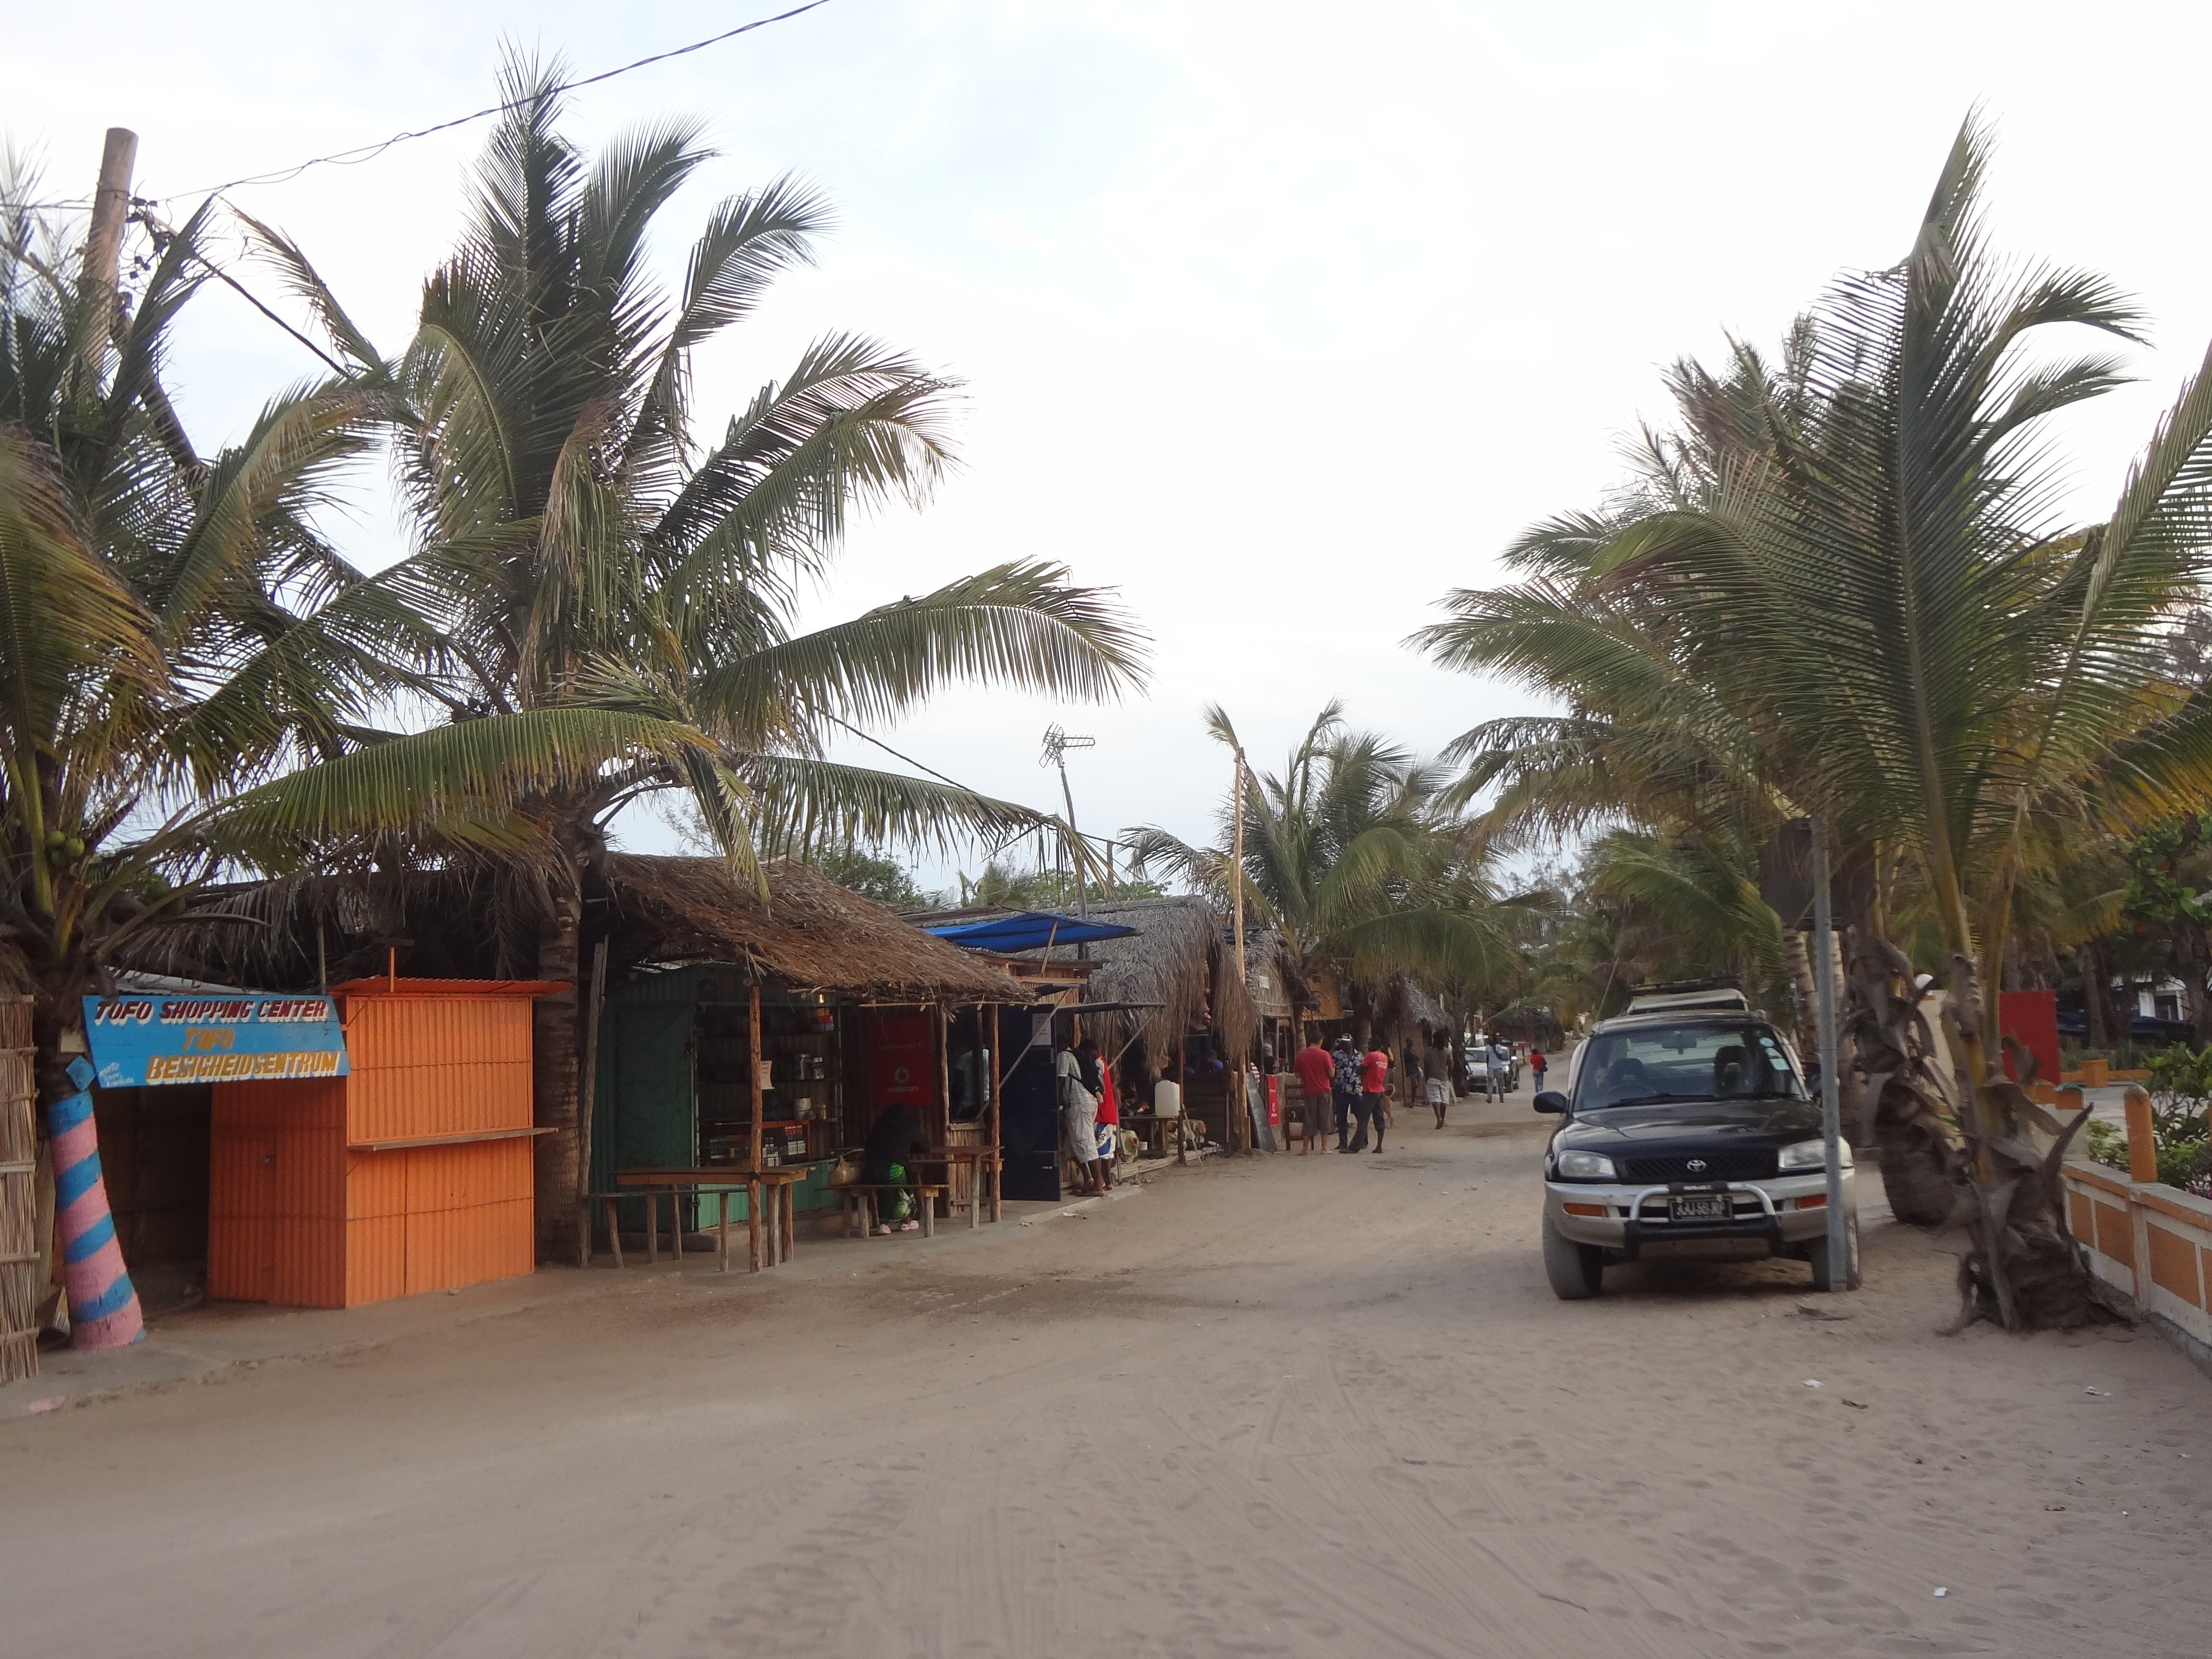 Mozambique Travel Tips